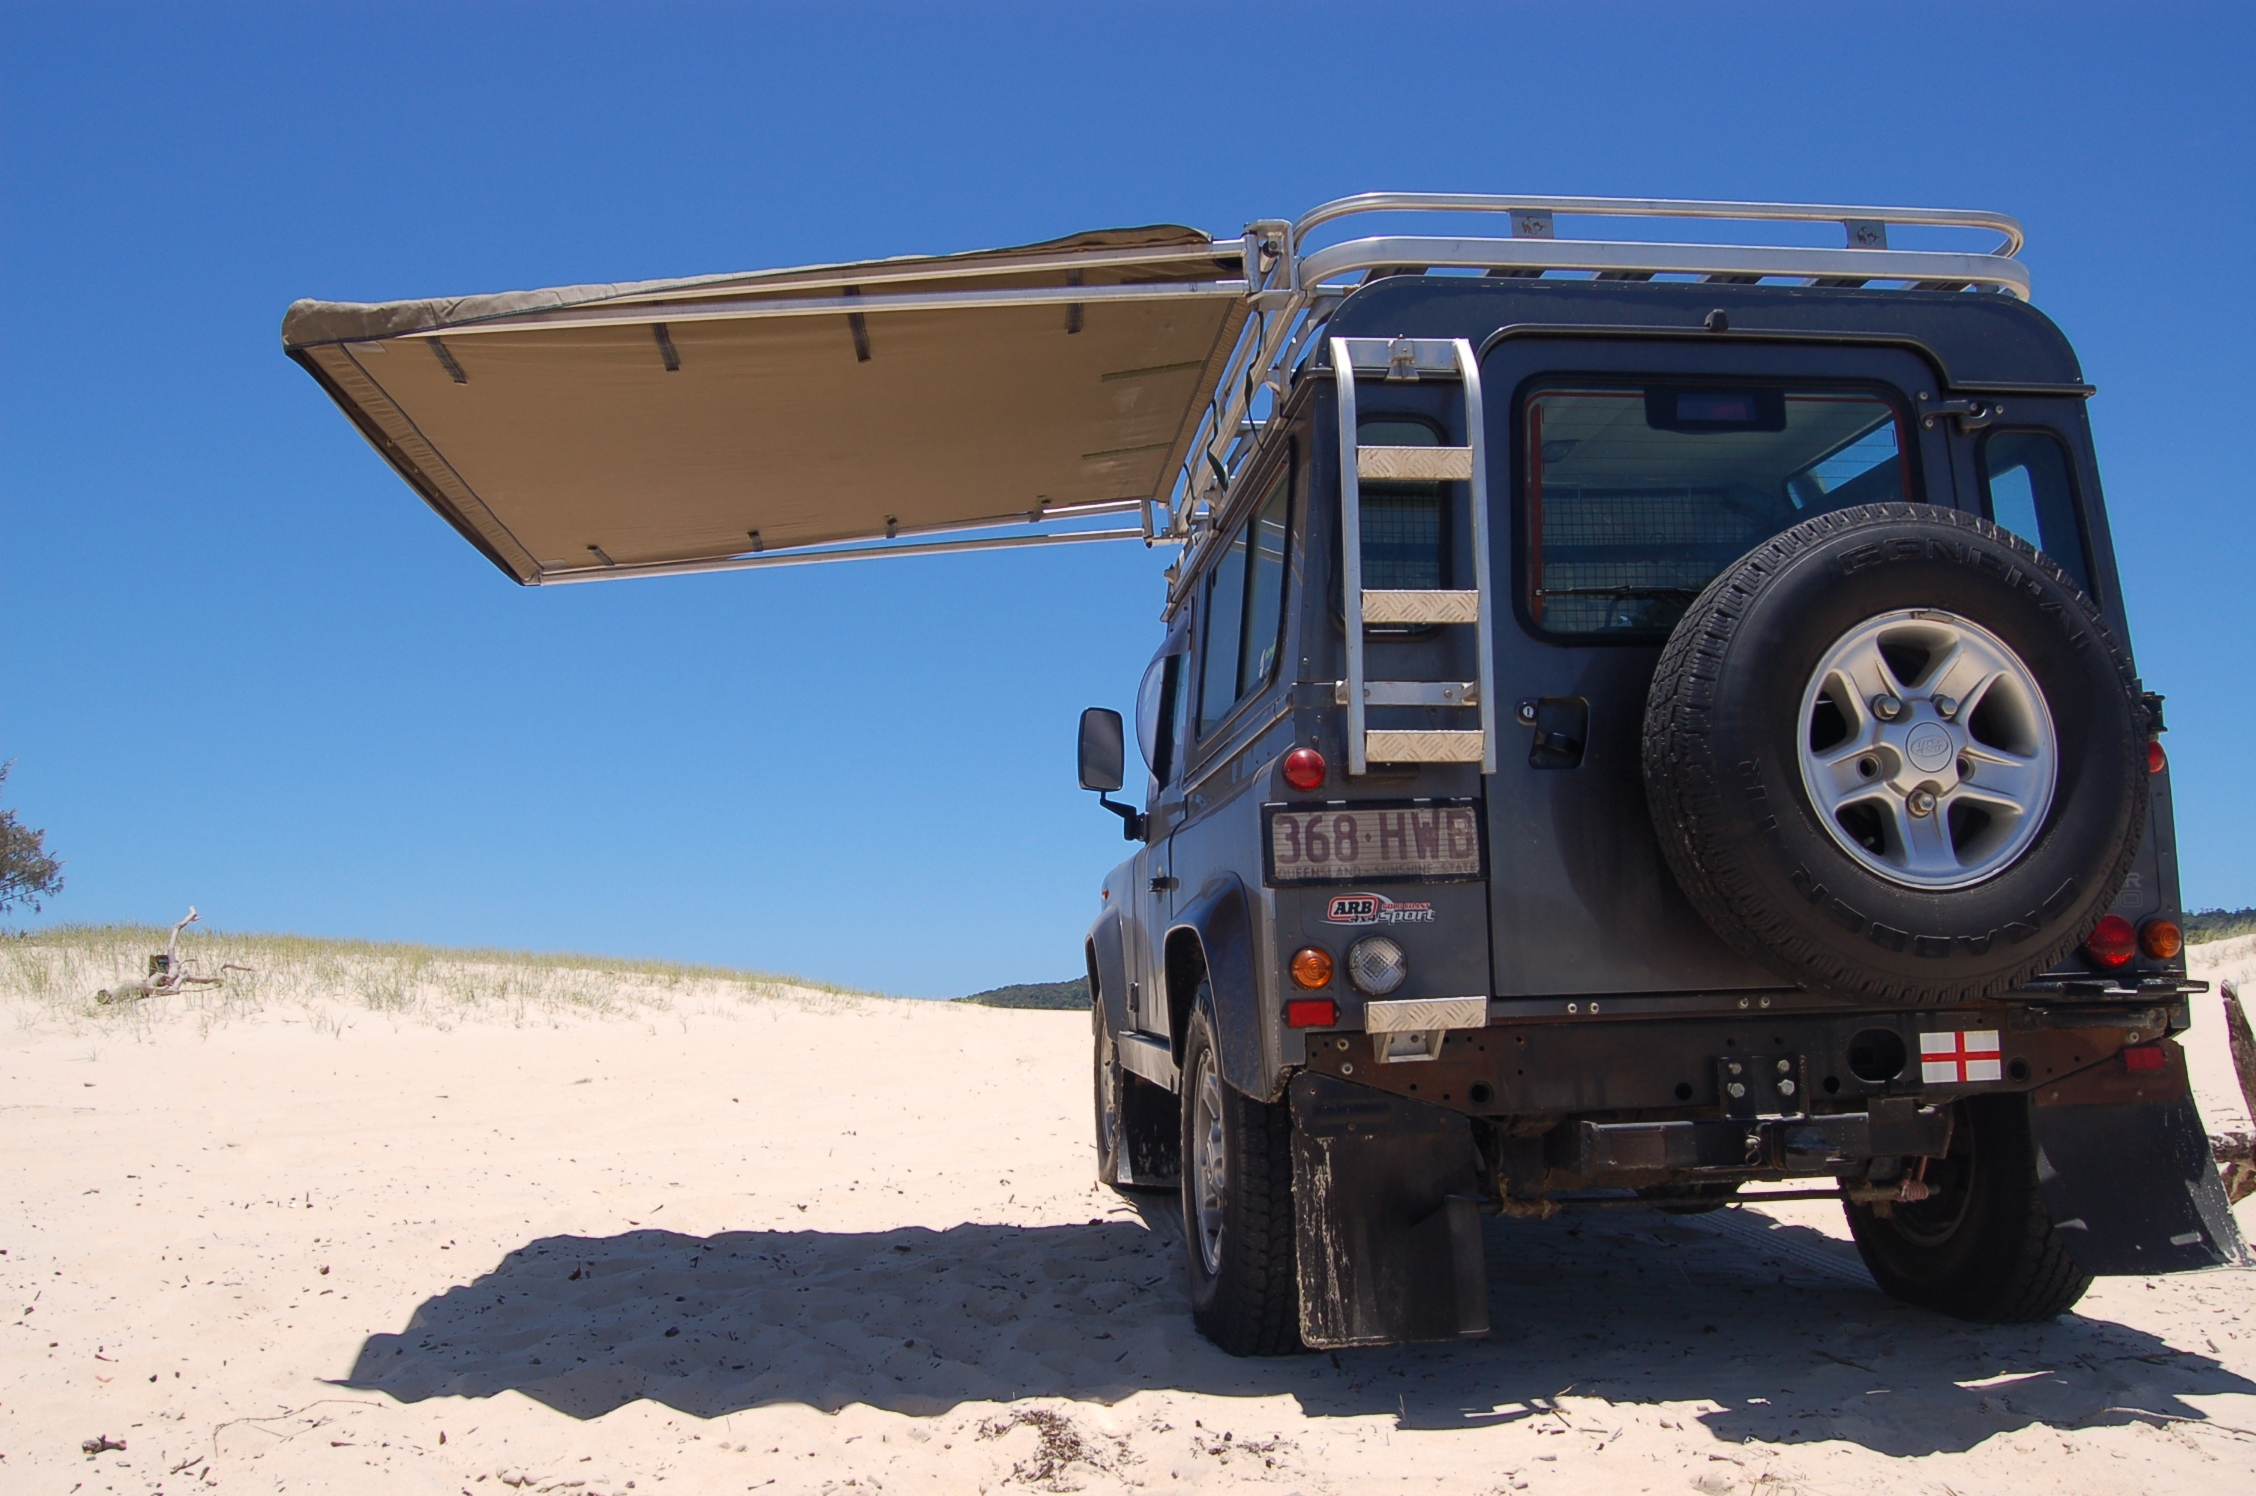 4x4 Awning Review 4wd Awnings Instant Awning Sun Shade Side Awning Car Awning Foxwing Canopy - Hannibal Safari Awnings Review & 4x4 Awning Review 4wd Awnings Instant Awning Sun Shade Side ...